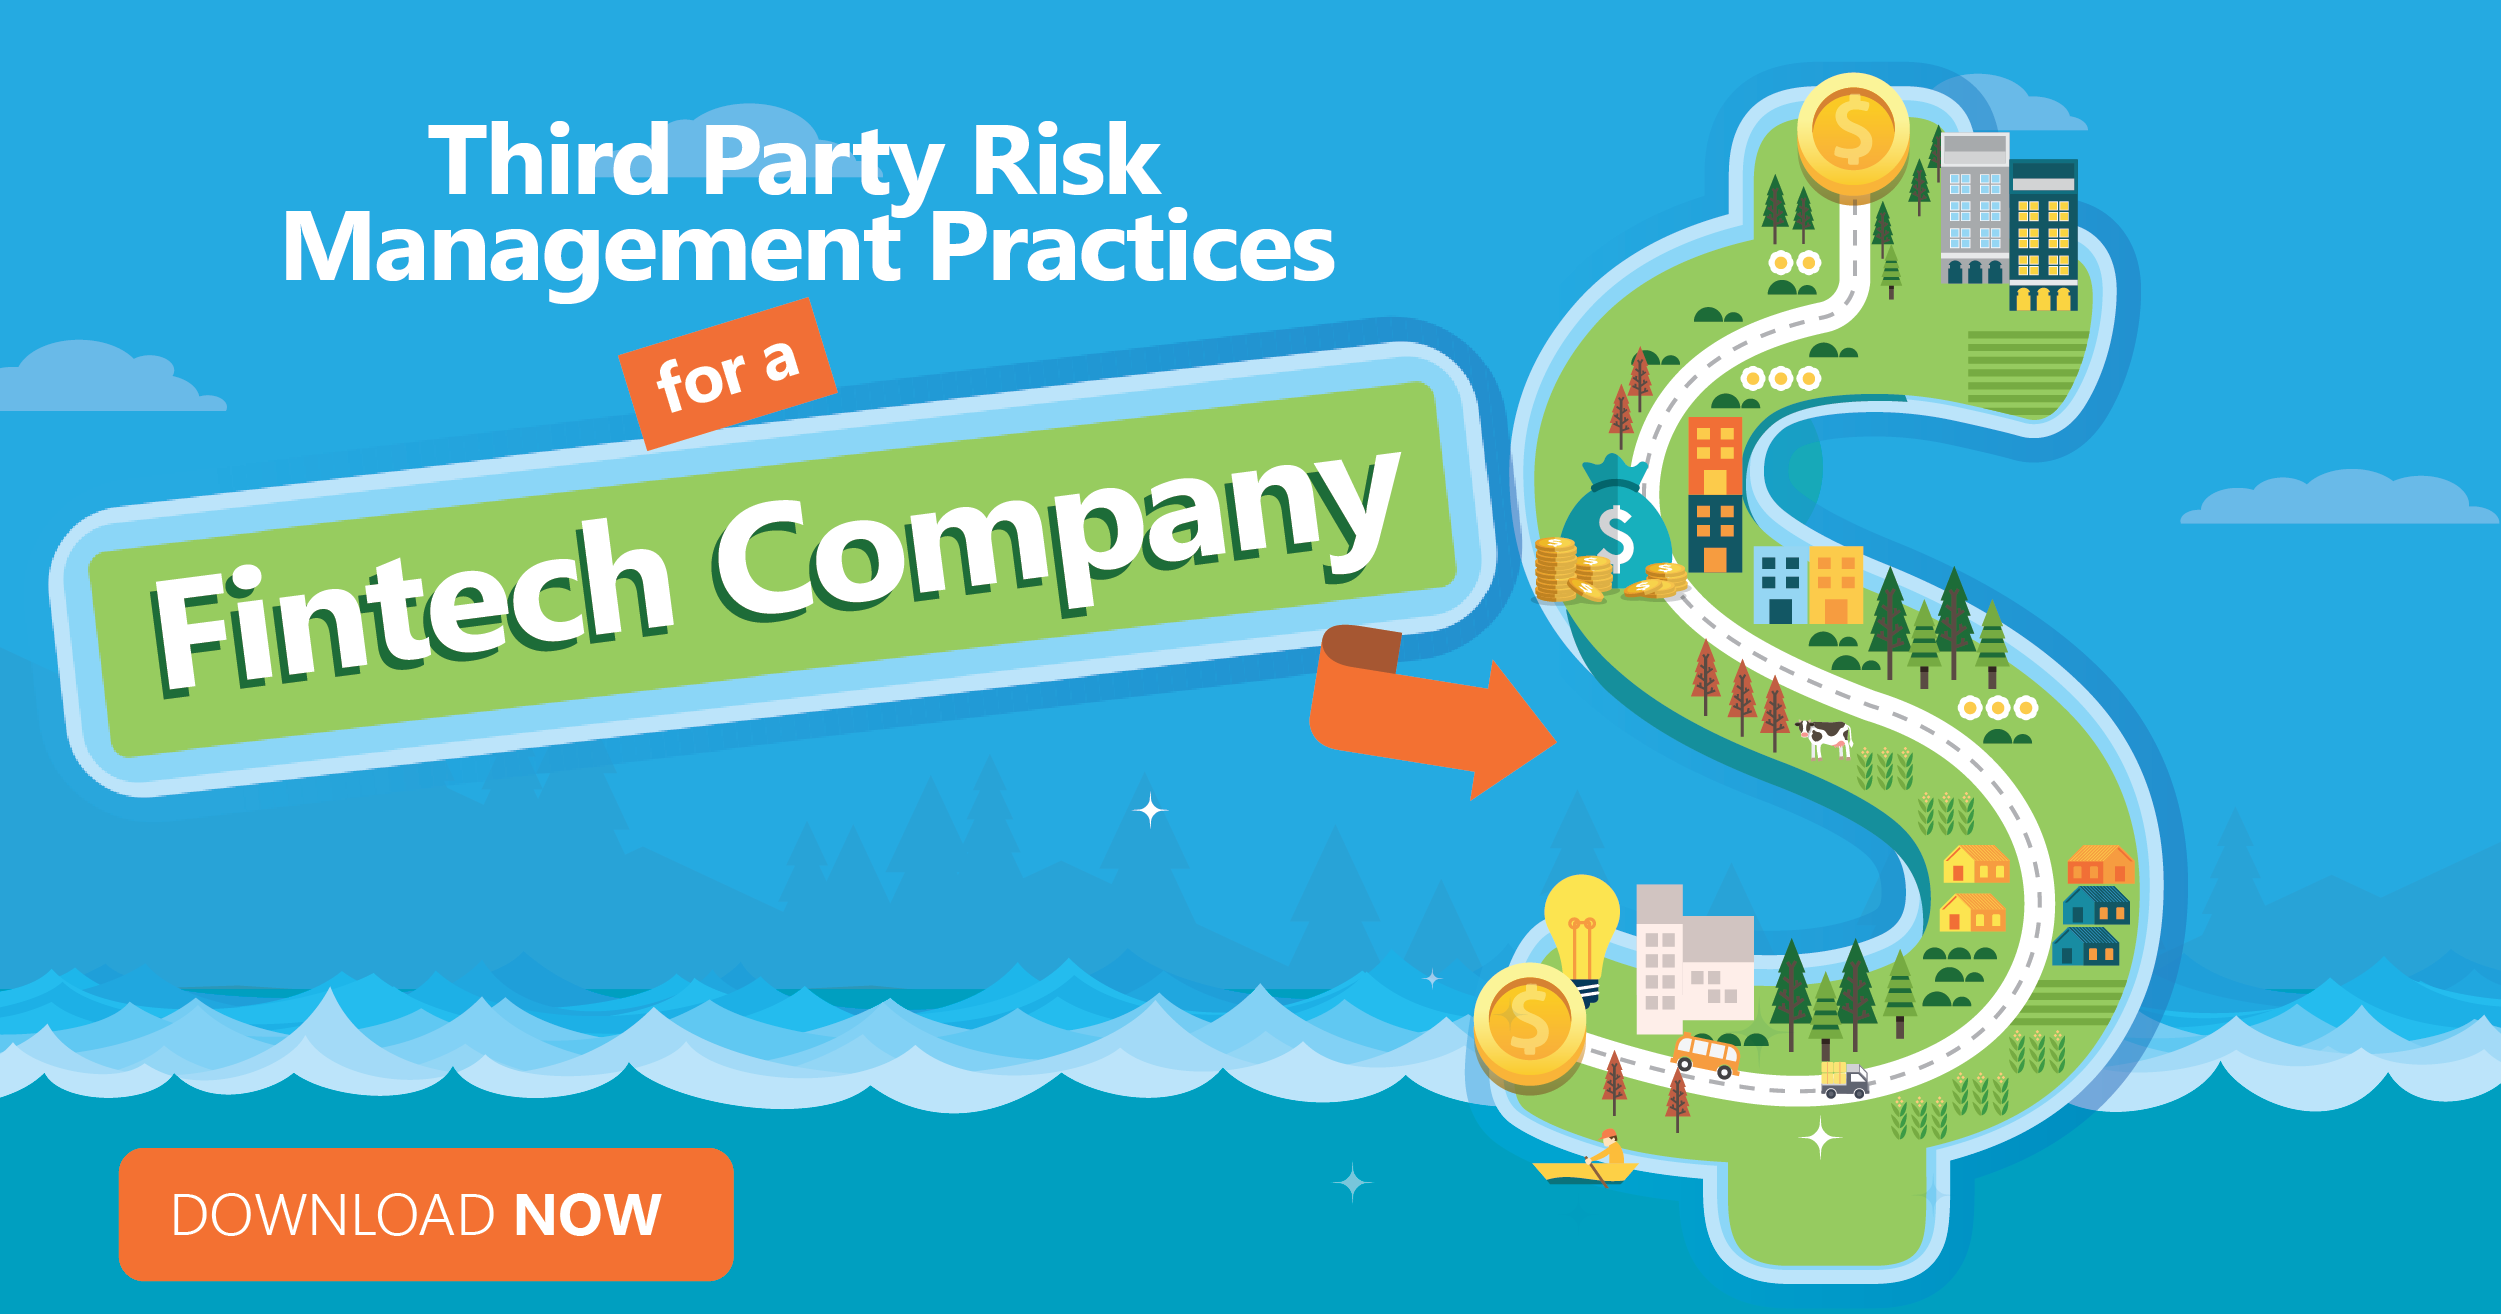 fintech third party risk management best practices